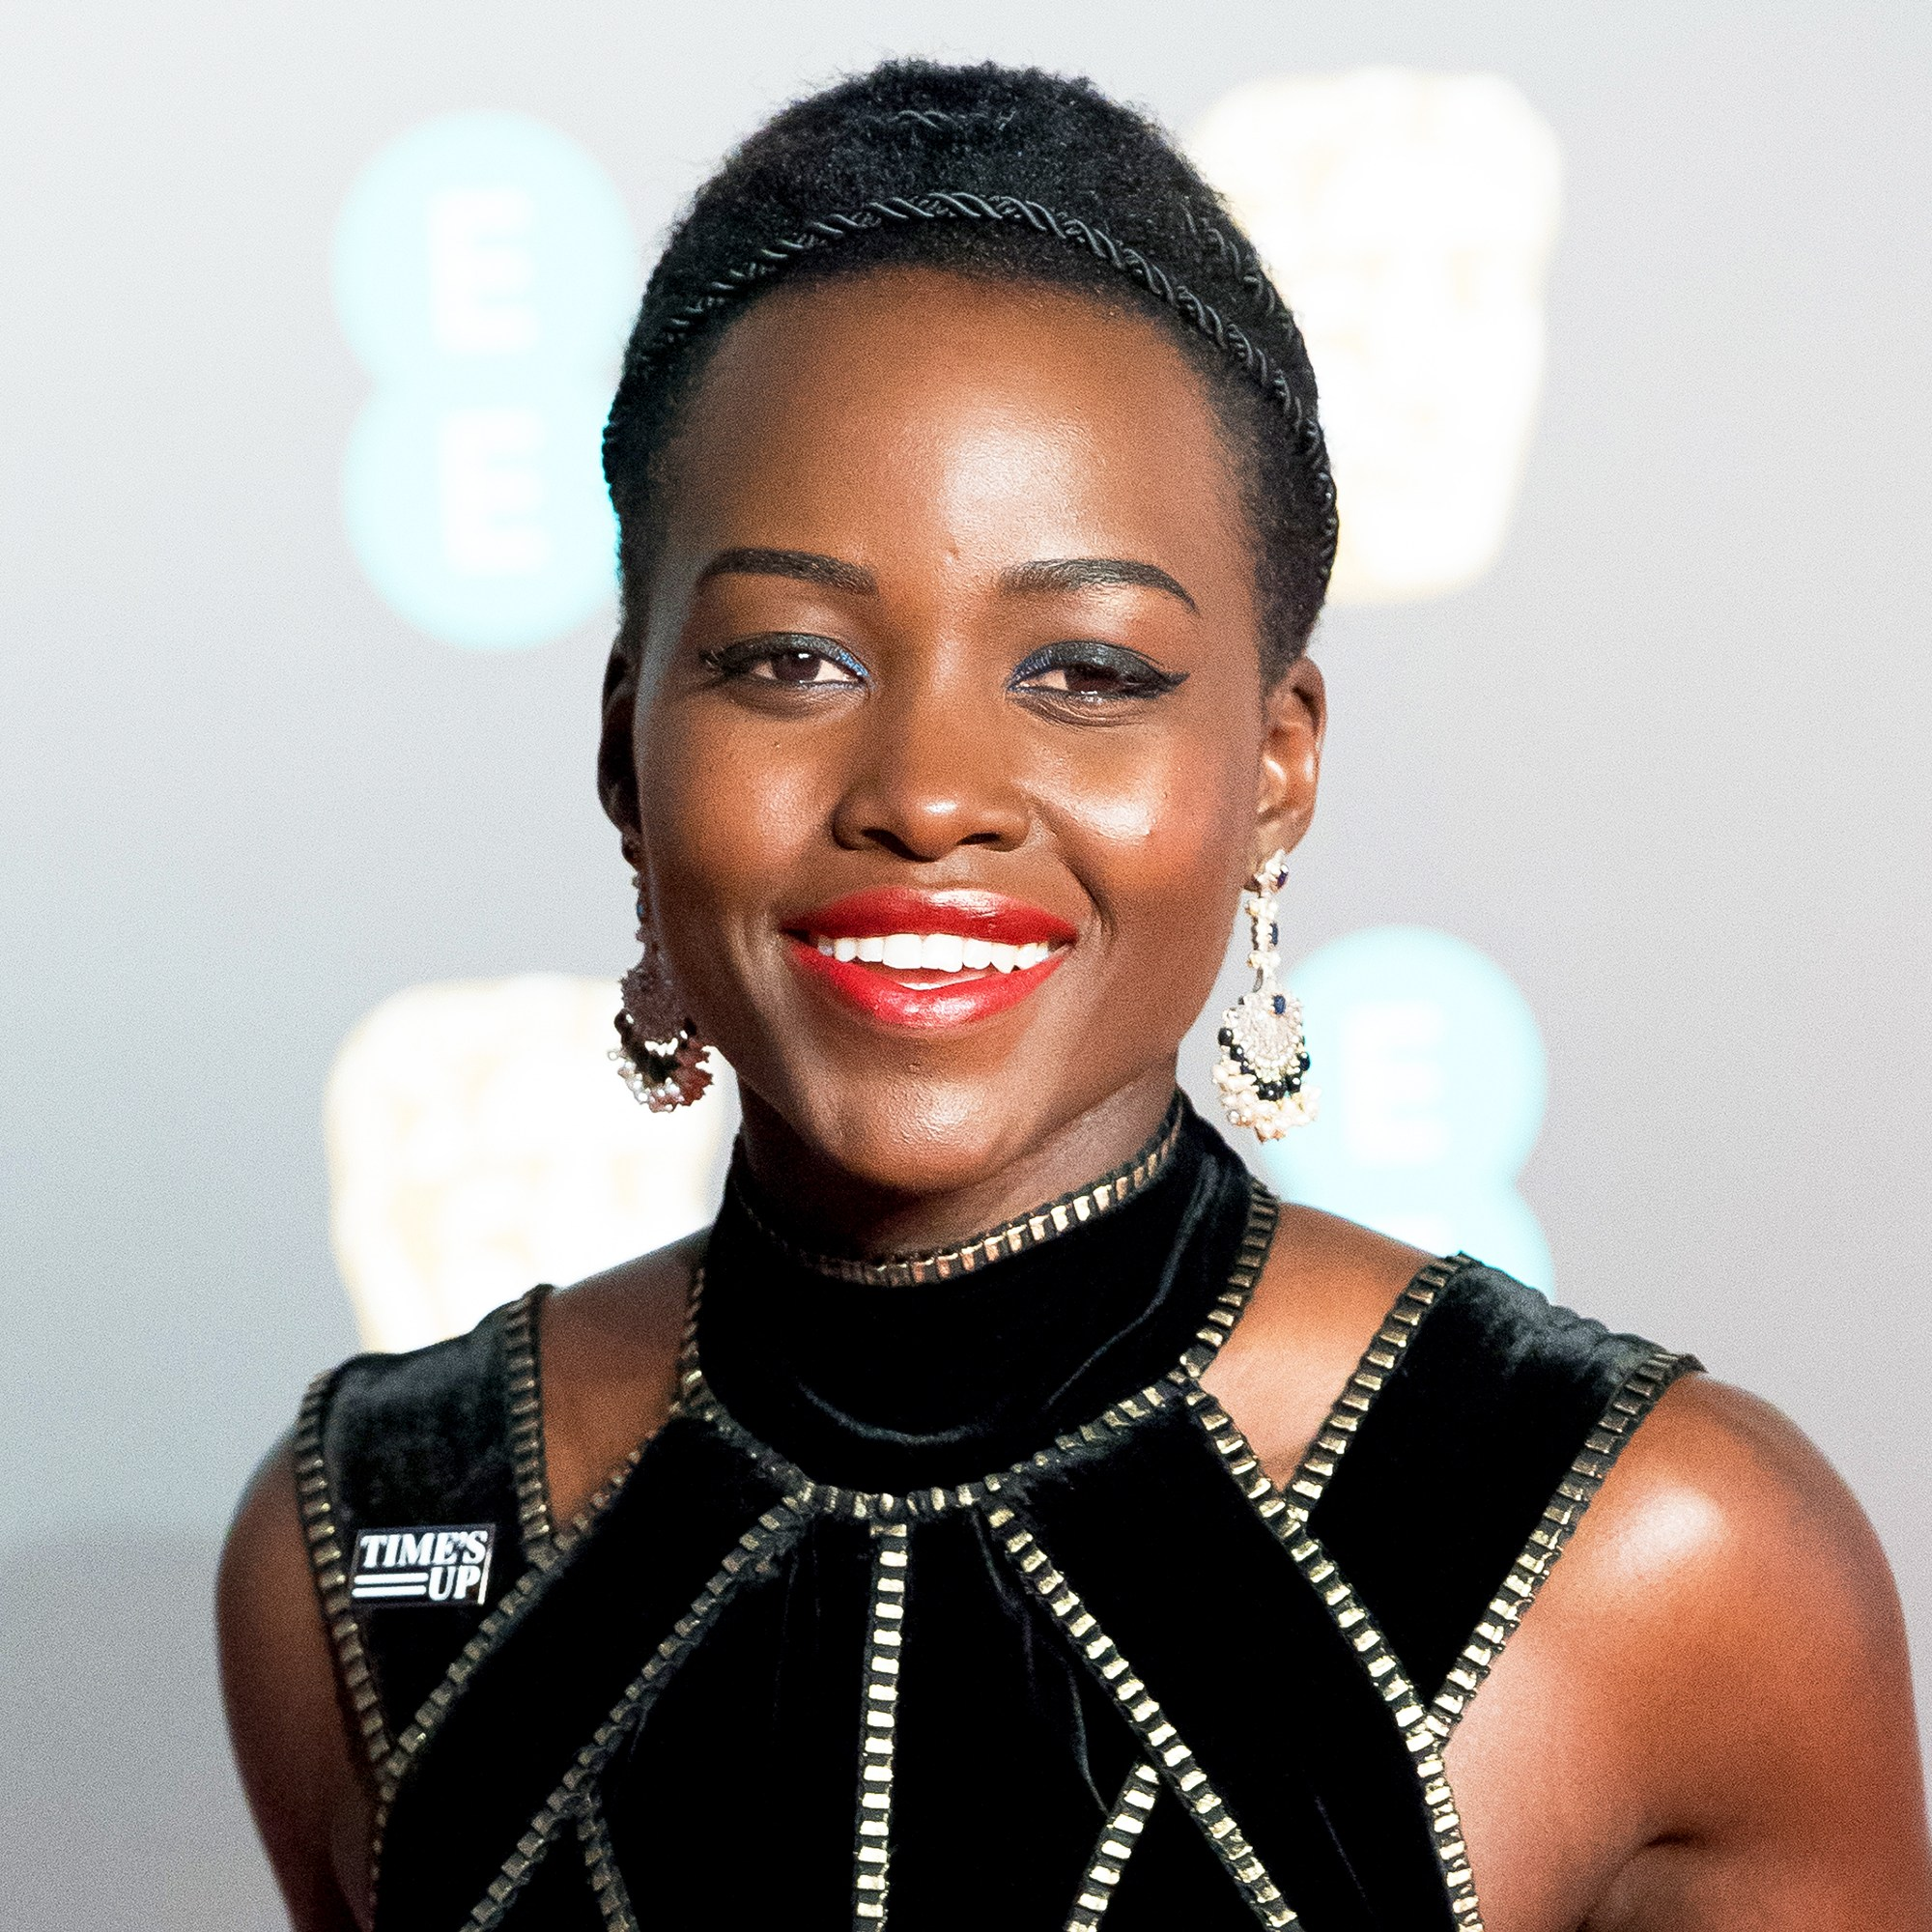 Lupita Nyong'o attends the EE British Academy Film Awards held at Royal Albert Hall on February 18, 2018 in London, England.